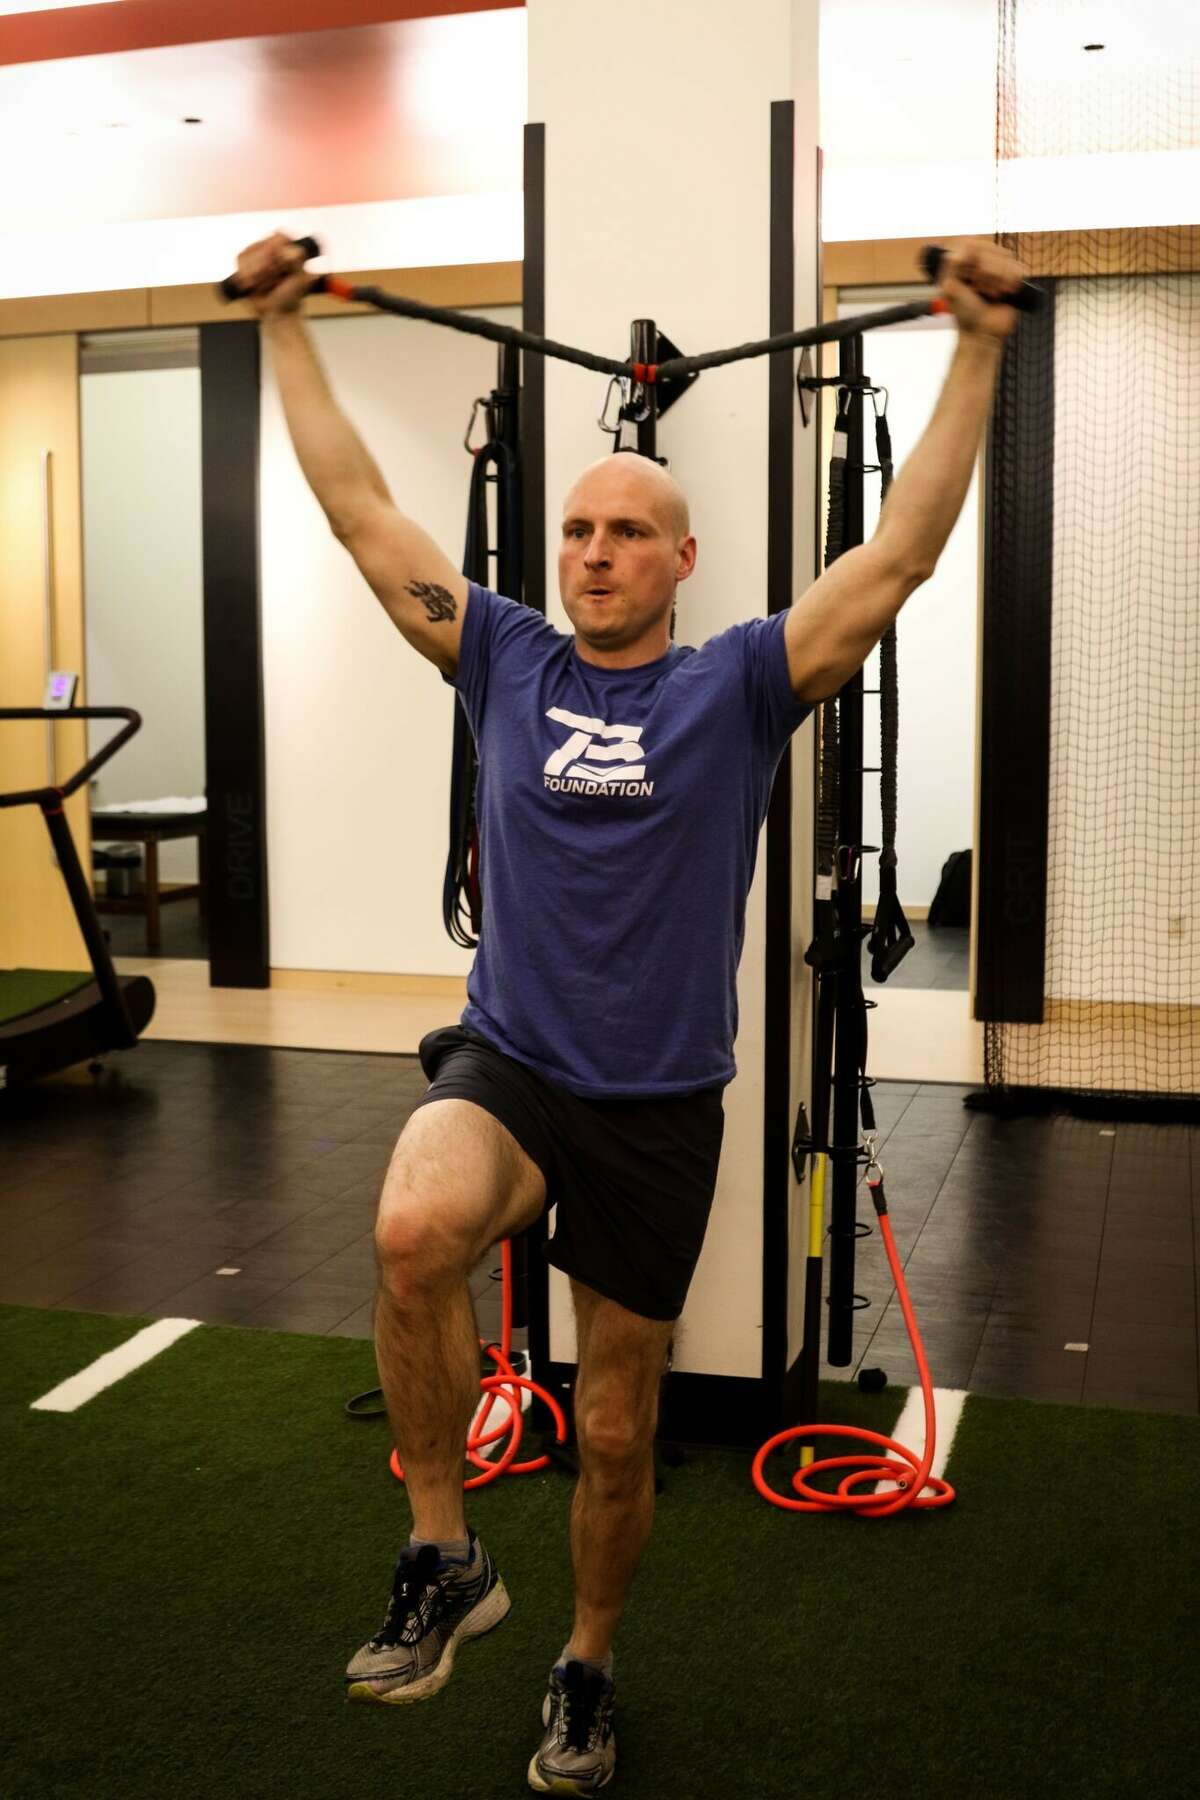 Former La Salle Institute and Union College football player Kevin Flike works out at TB12 in Foxborough, Mass.